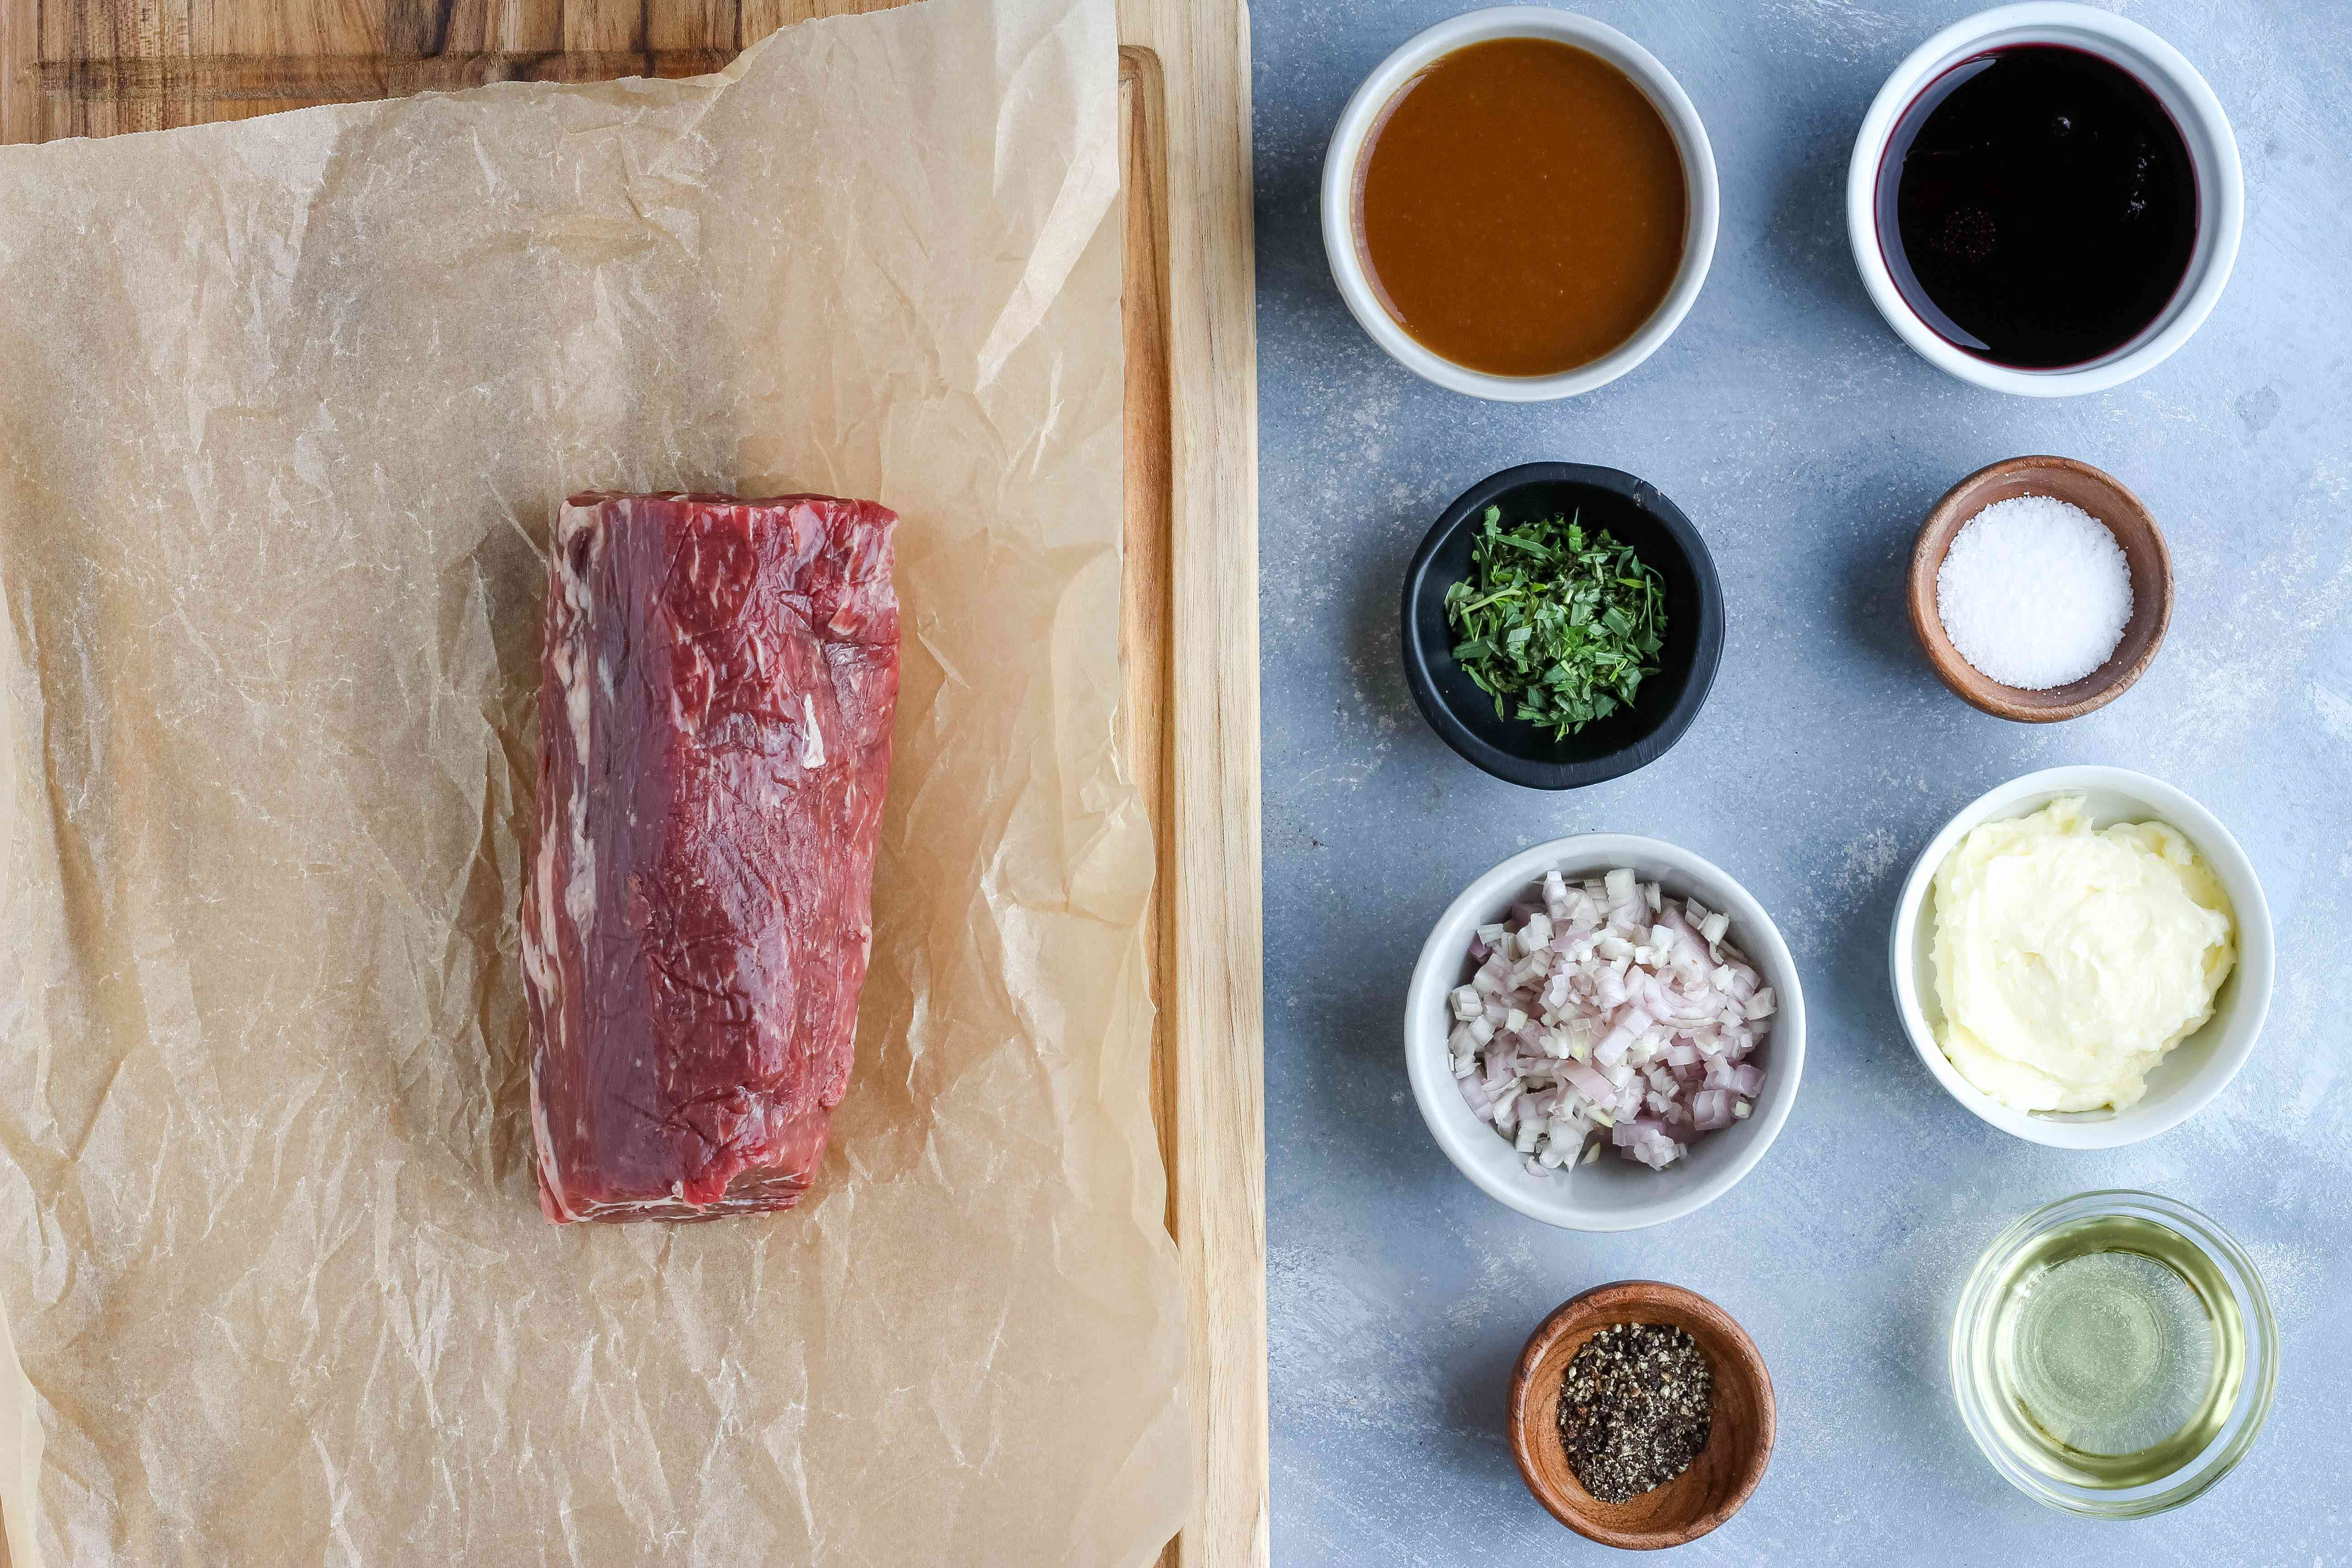 Ingredients for making a classic French chateaubriand